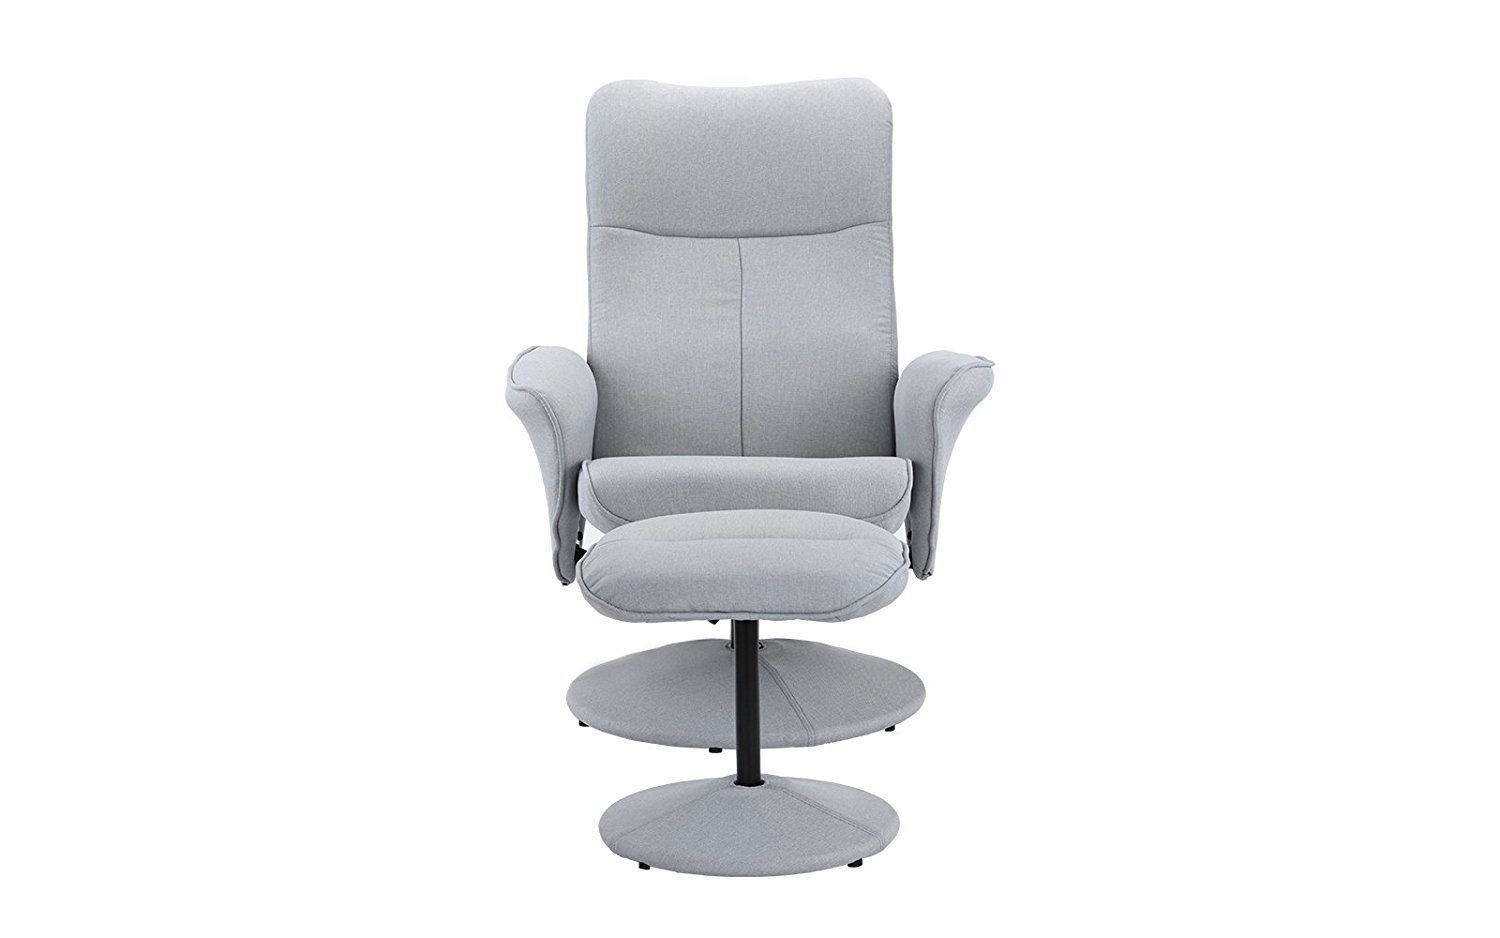 Sensational Details About Fabric Modern Swivel Office Chair Gaming Chair With Recliner And Footstool Gmtry Best Dining Table And Chair Ideas Images Gmtryco